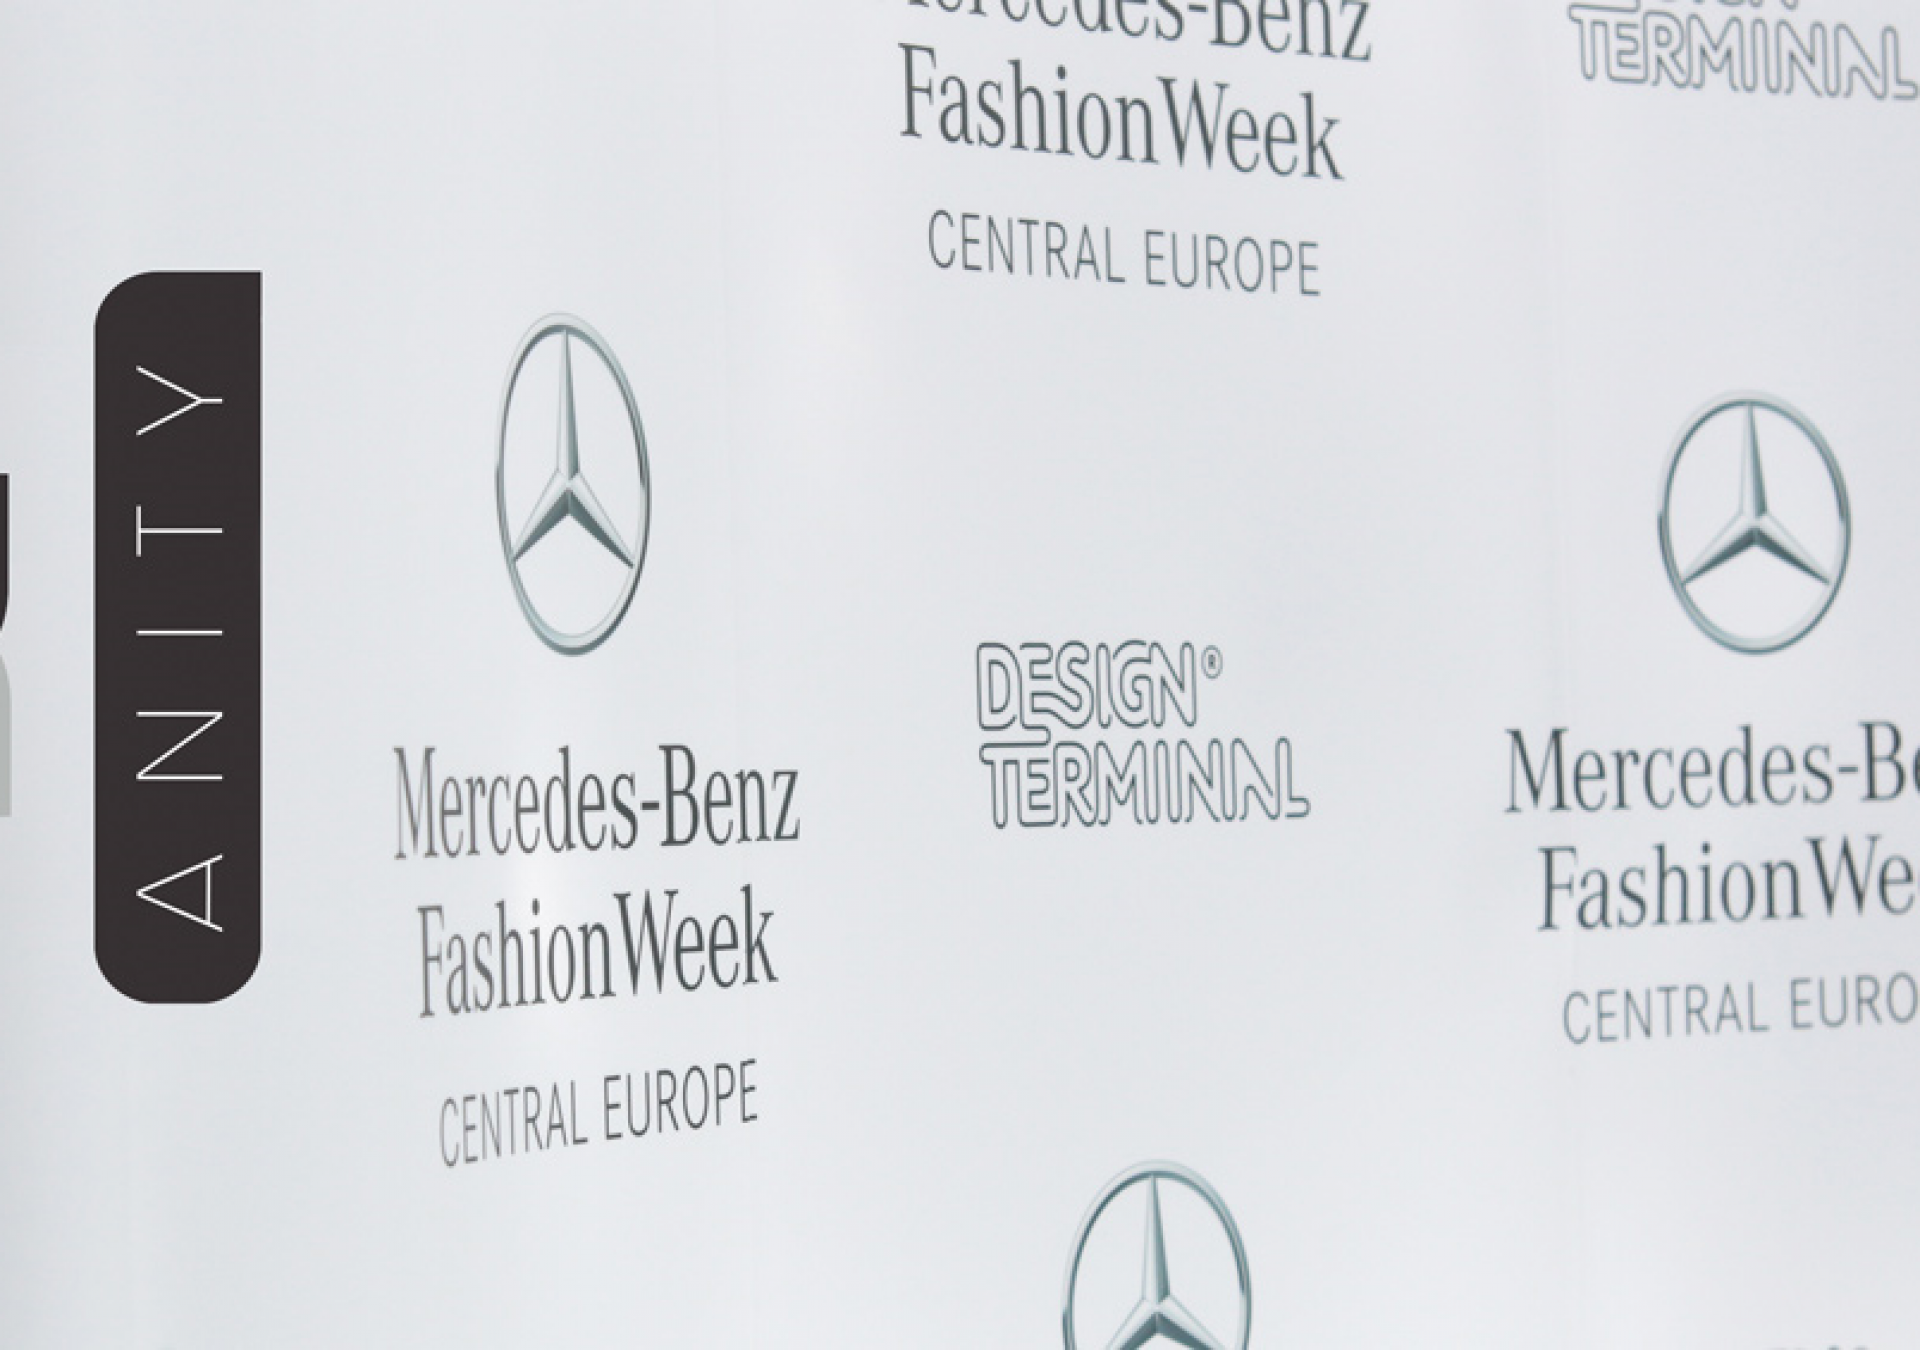 MERCEDES-BENZ FASHION WEEK CENTRAL EUROPE